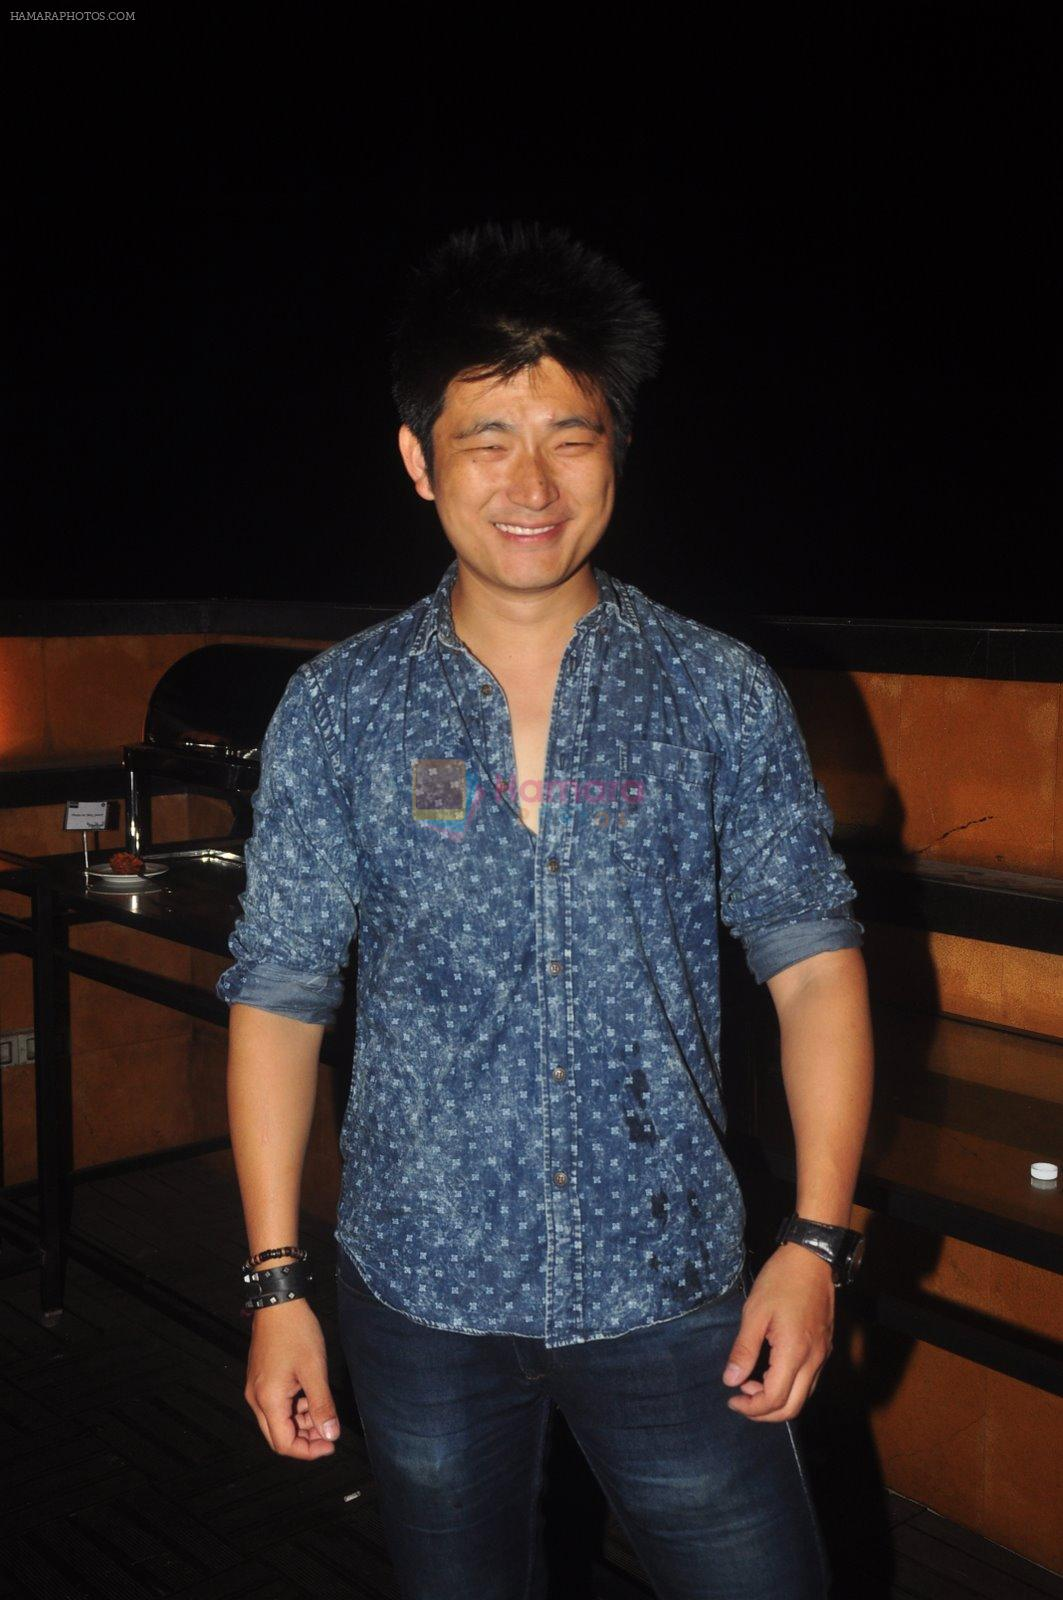 Meiyang Chang at Ravi Dubey's birthday bash hosted by Sargun mehta in Mumbai on 29th Dec 2014